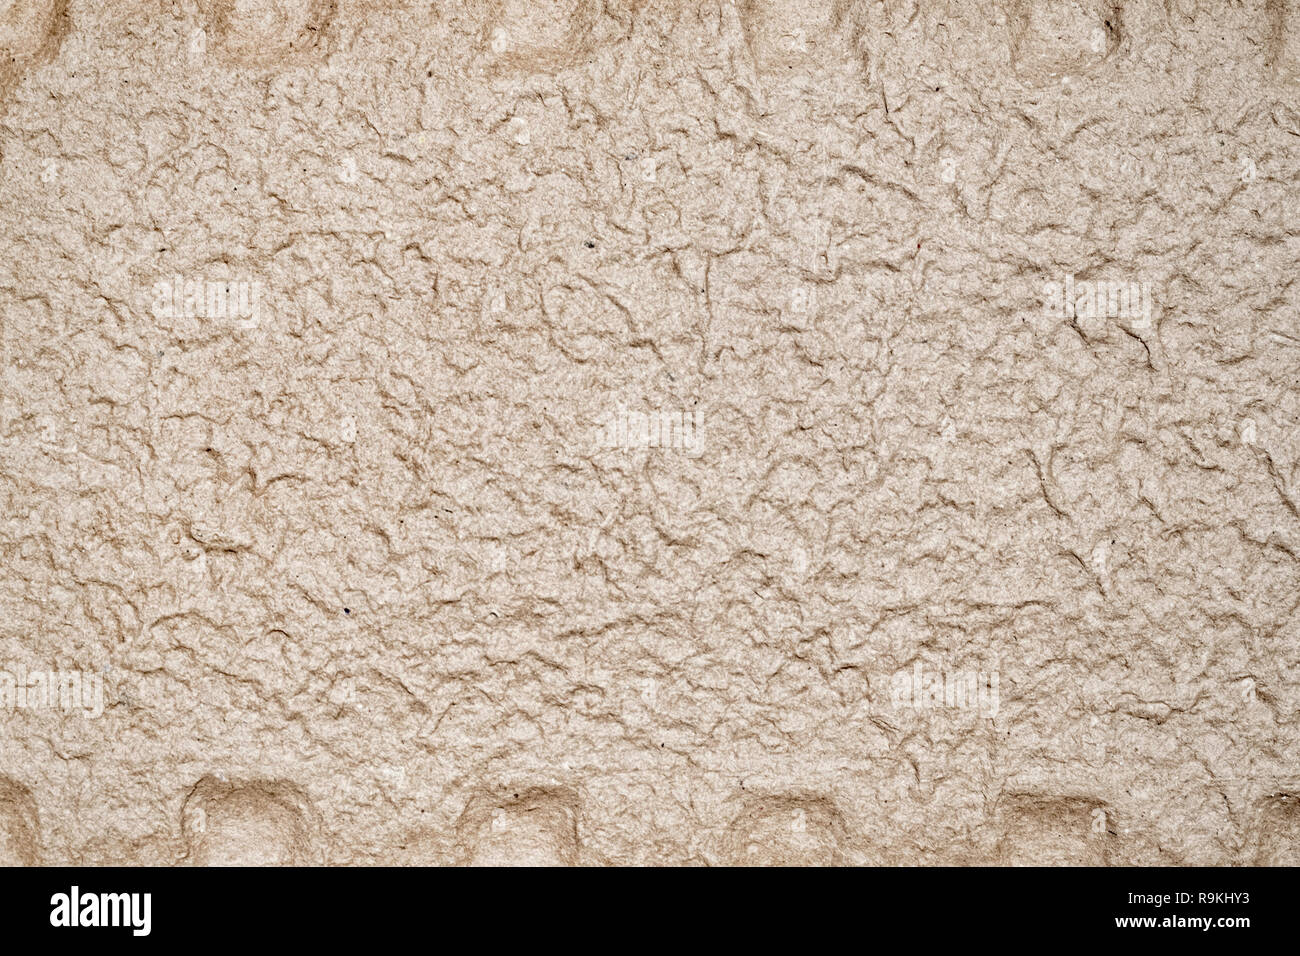 Uneven cardboard surface texture with fibers paper background monochrome - Stock Image